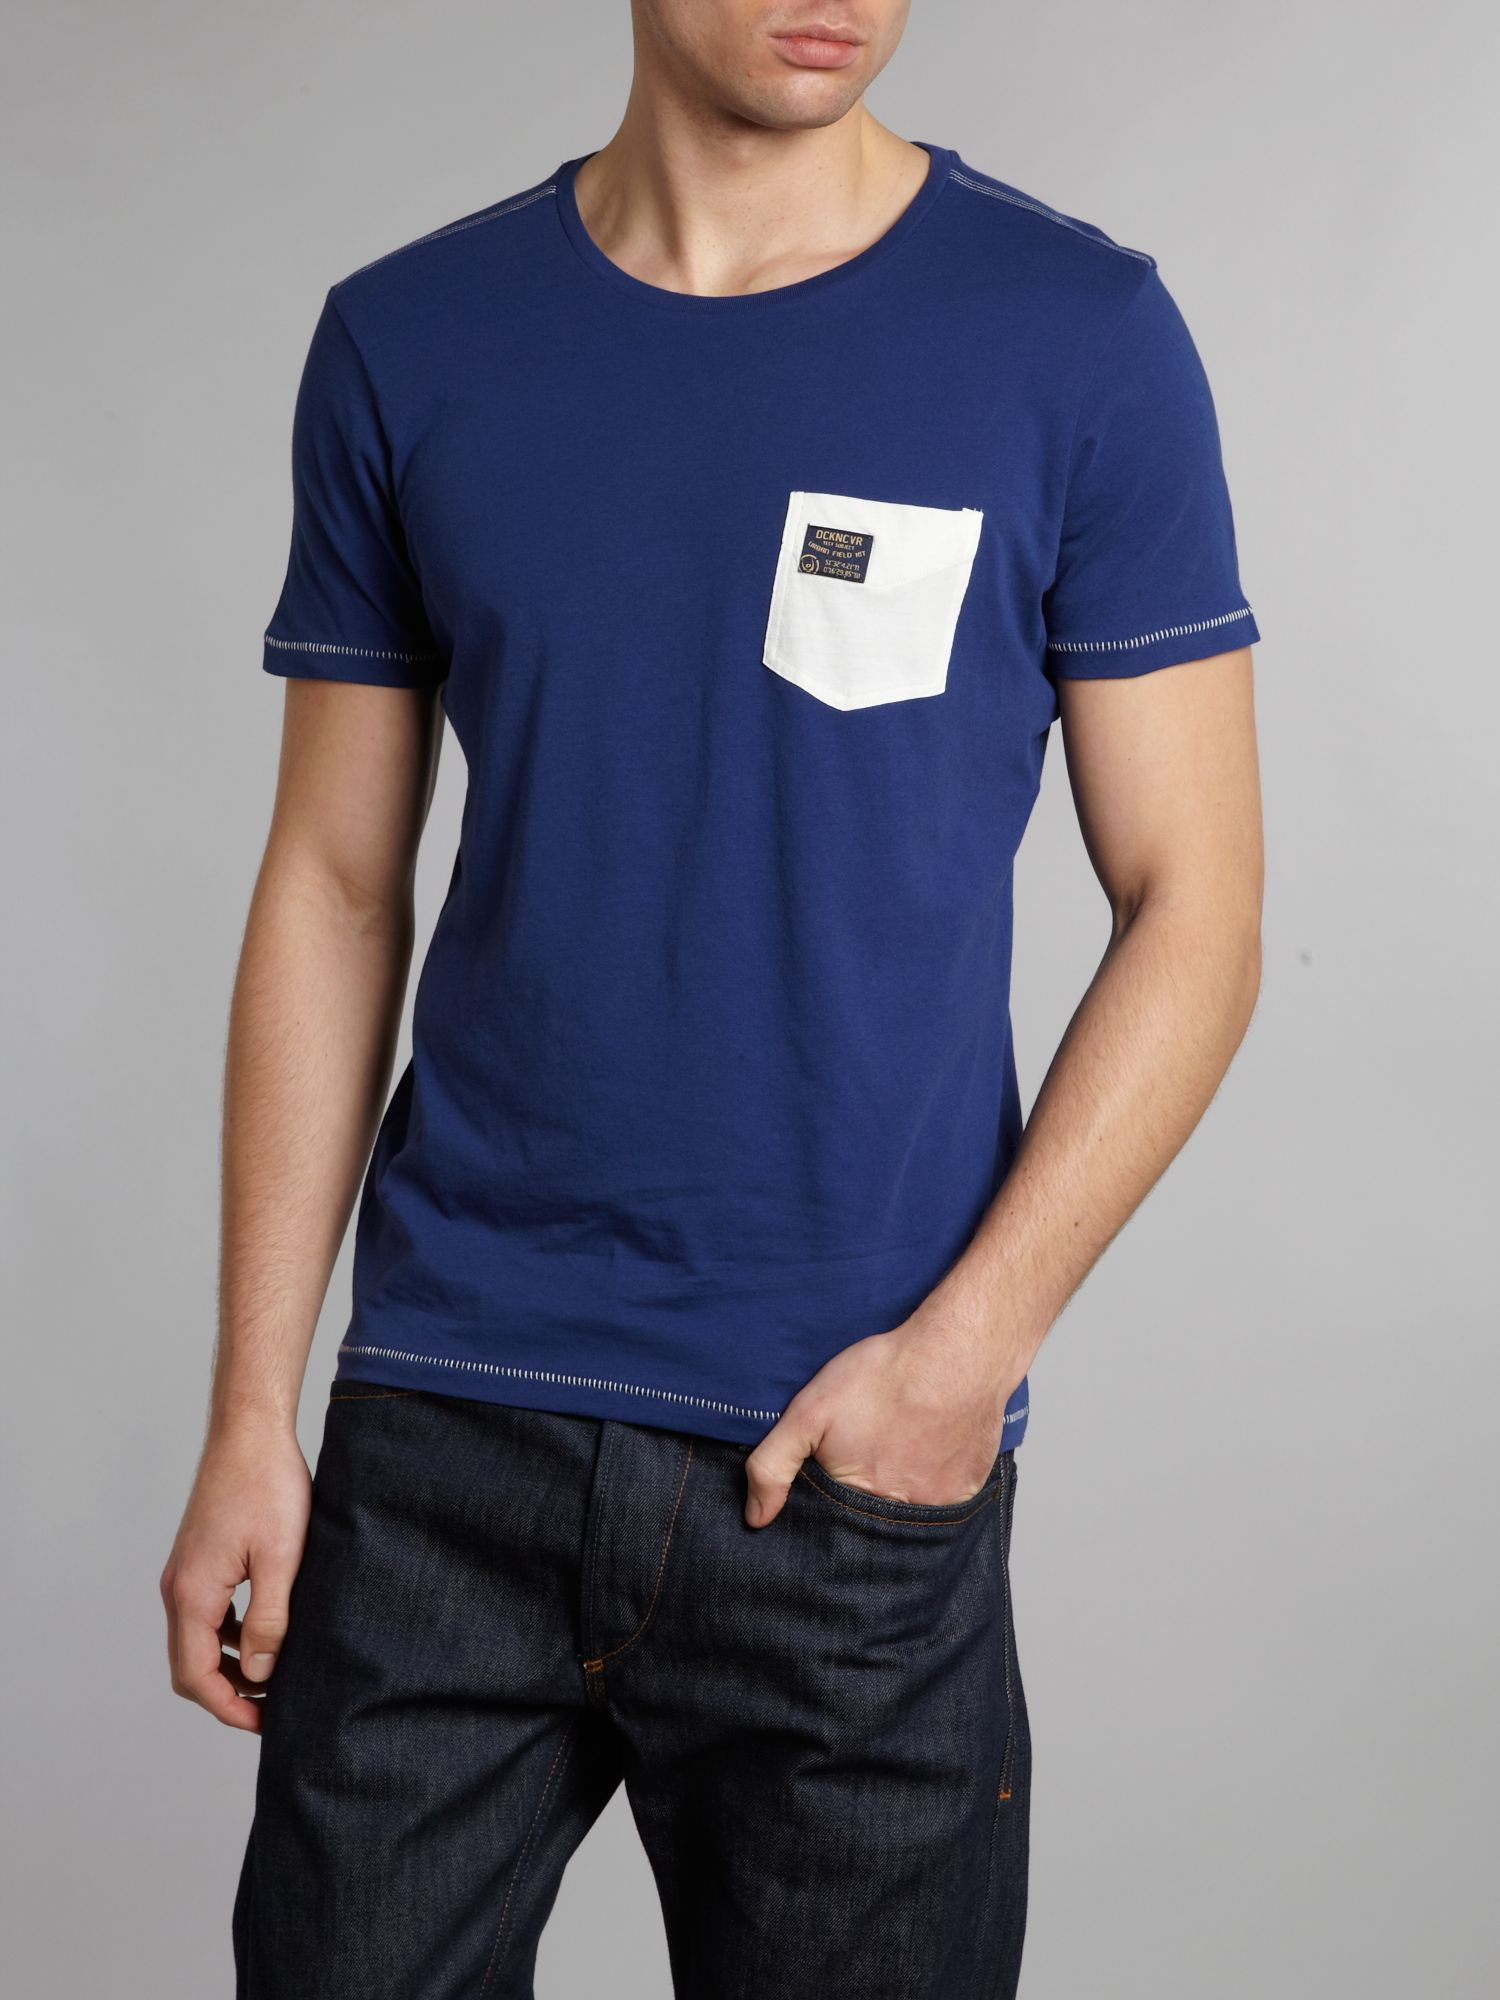 Duck and Cover Contrast Pocket Crew Neck Tshirt in Navy (Blue) for Men